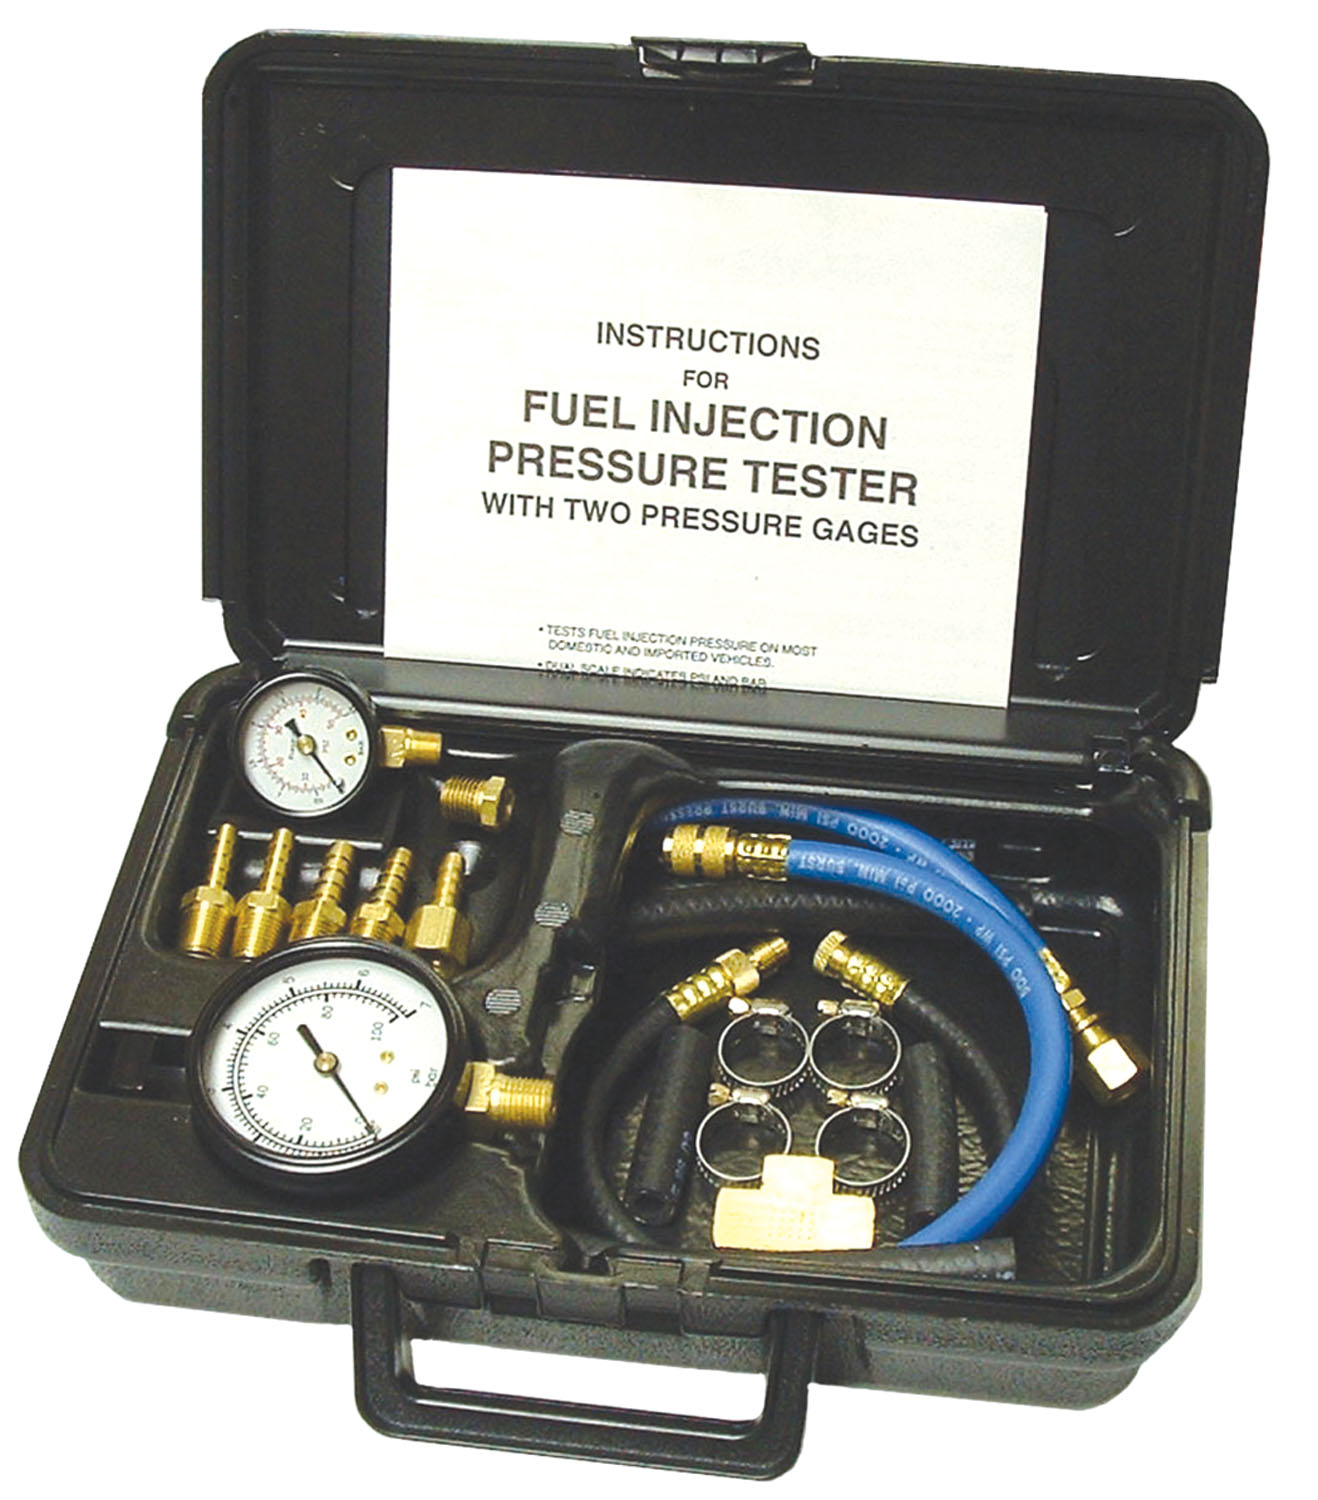 Fuel Injection Pressure Tester With Two Gages In Molded Plastic 78265 Voltage Drop Pro Circuit From Hickok Waekon Storage Case